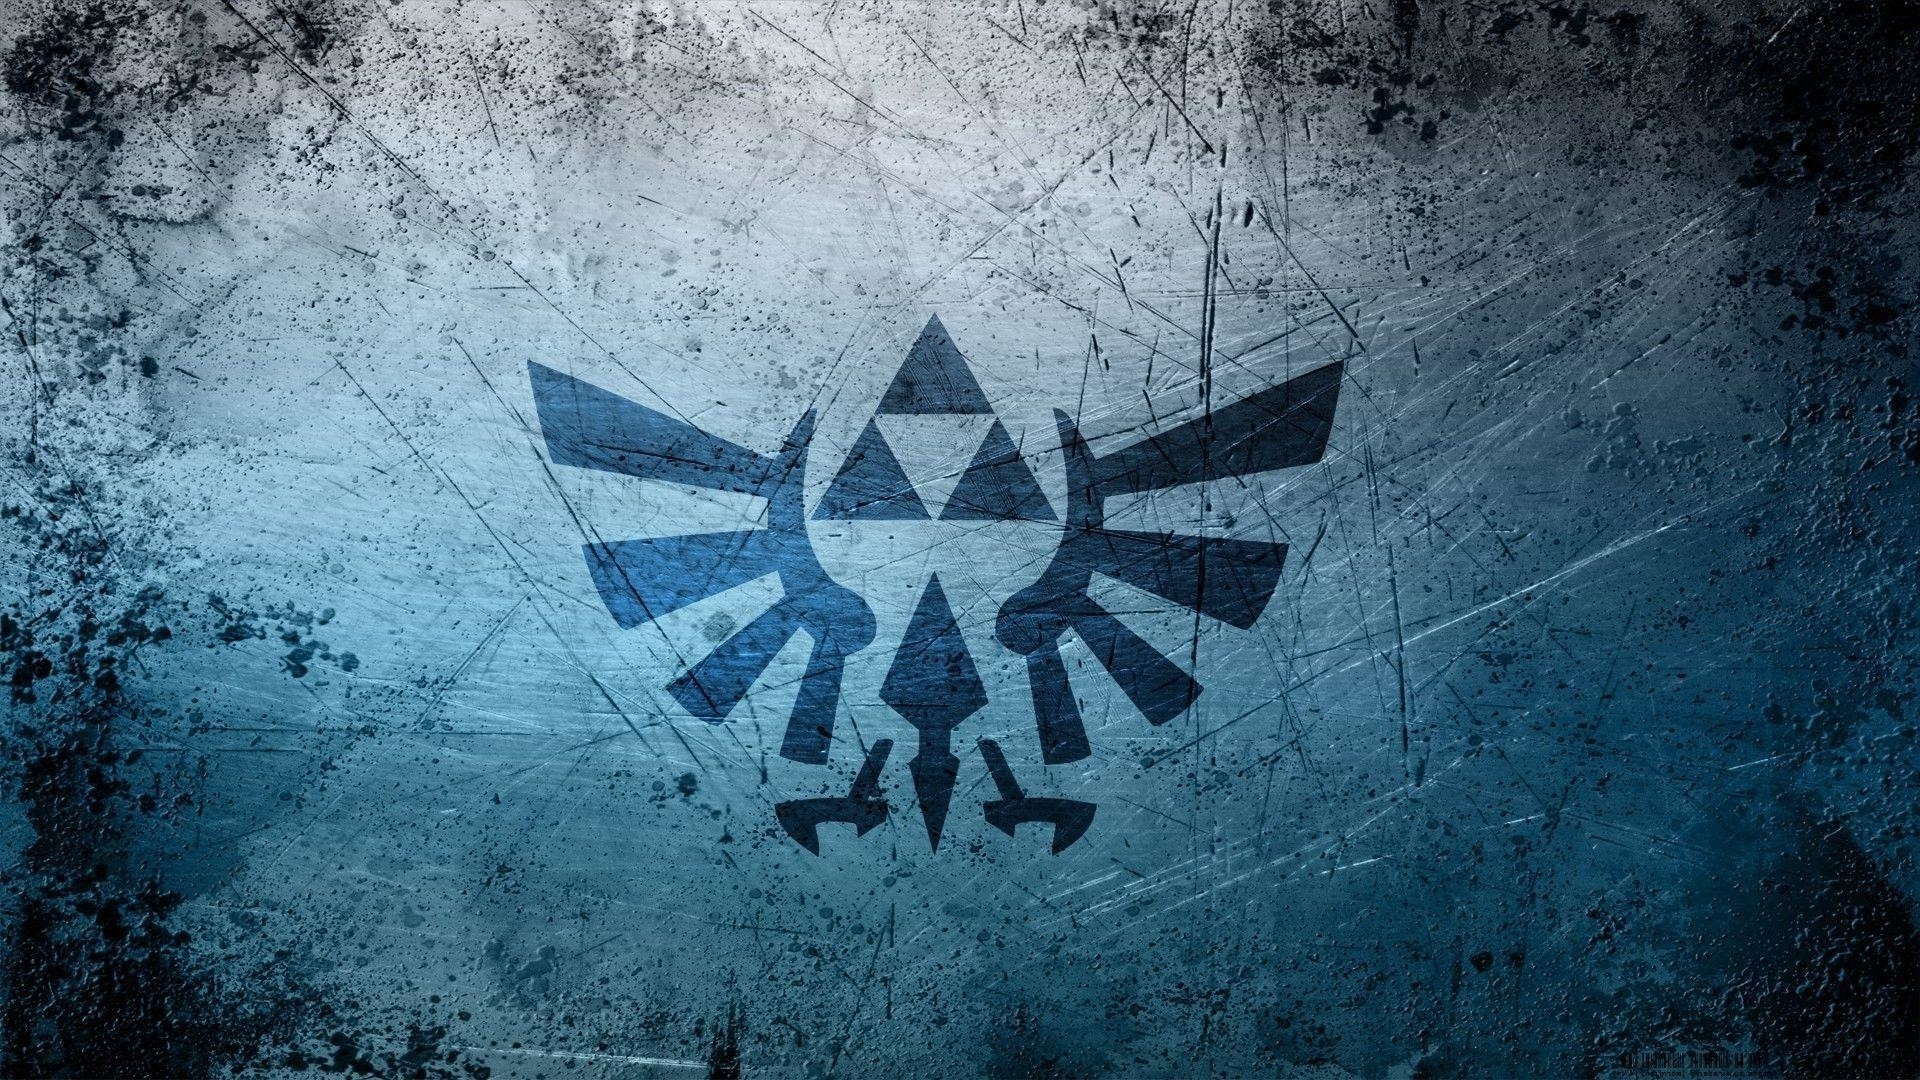 legend of zelda background (83+ images)